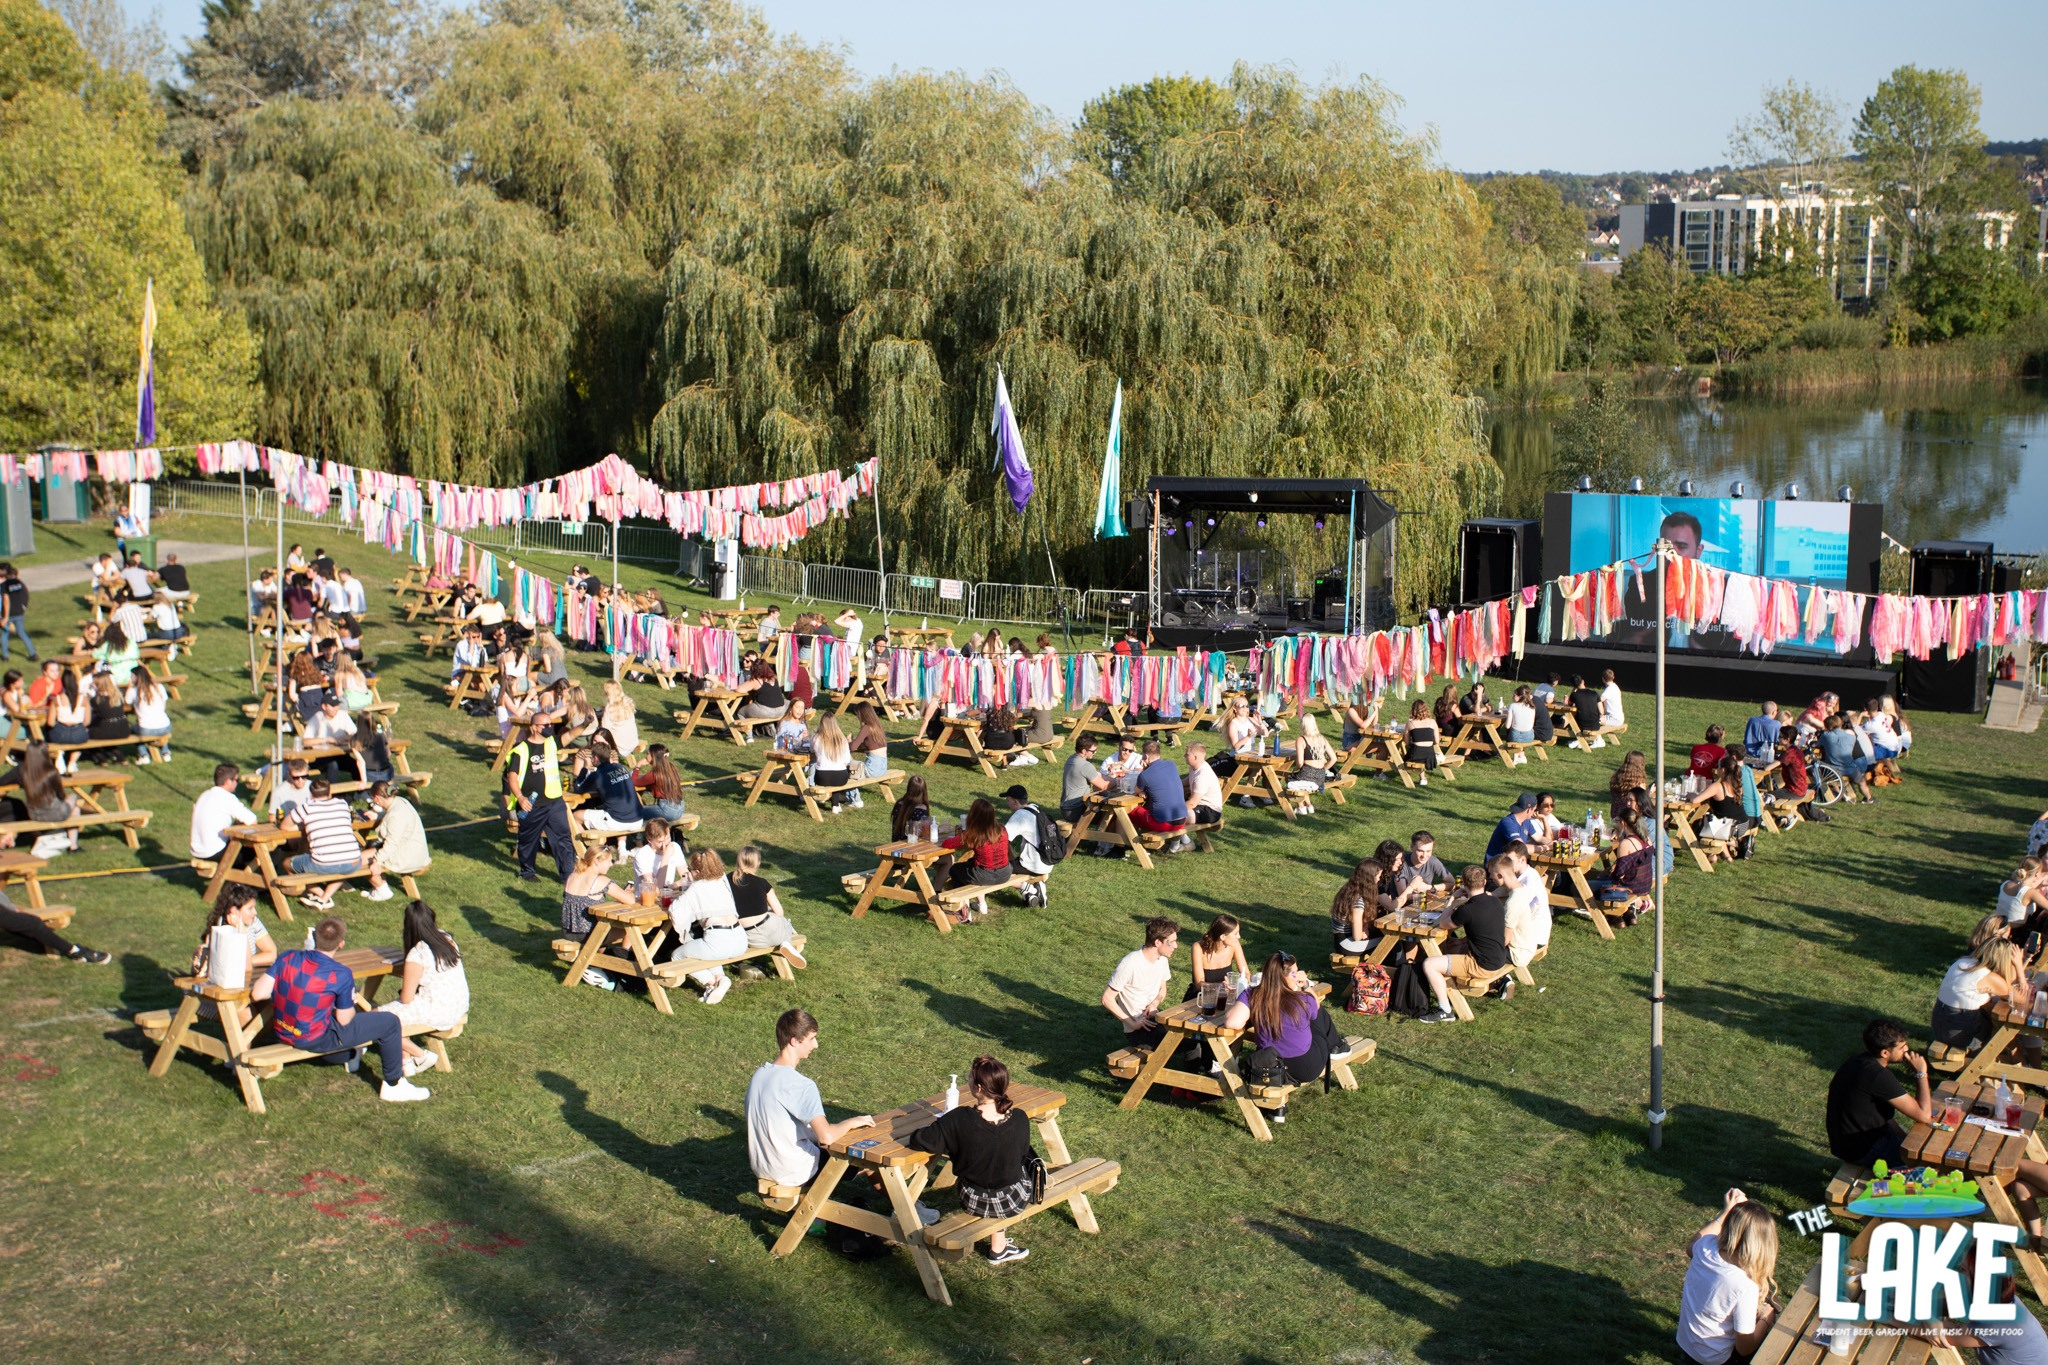 USSU University of Surrey Lake Venue Outdoor seating and cinema for Freshers week 2020 COVID safe and secure venue and event